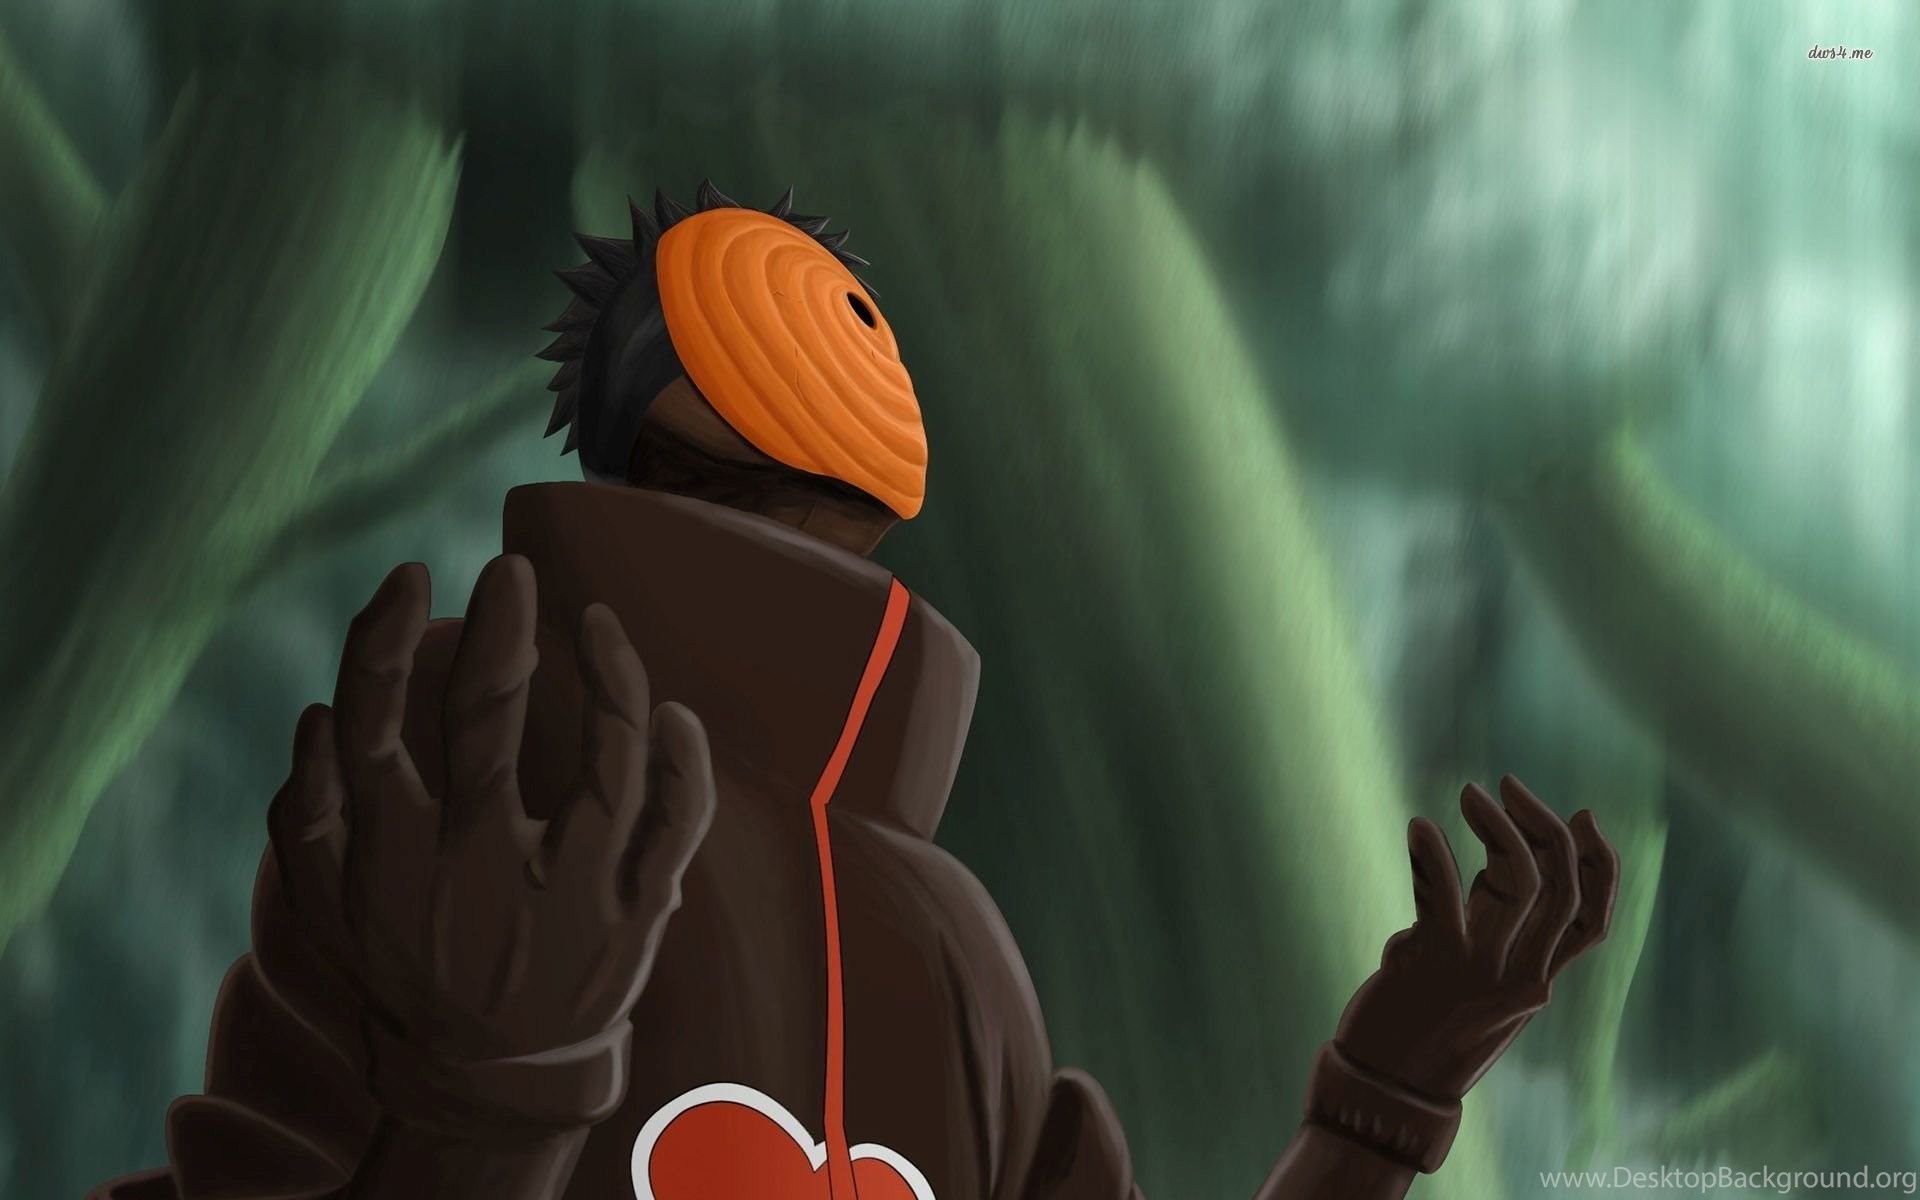 Obito Uchiha From Naruto Wallpapers Anime Wallpapers Desktop Background